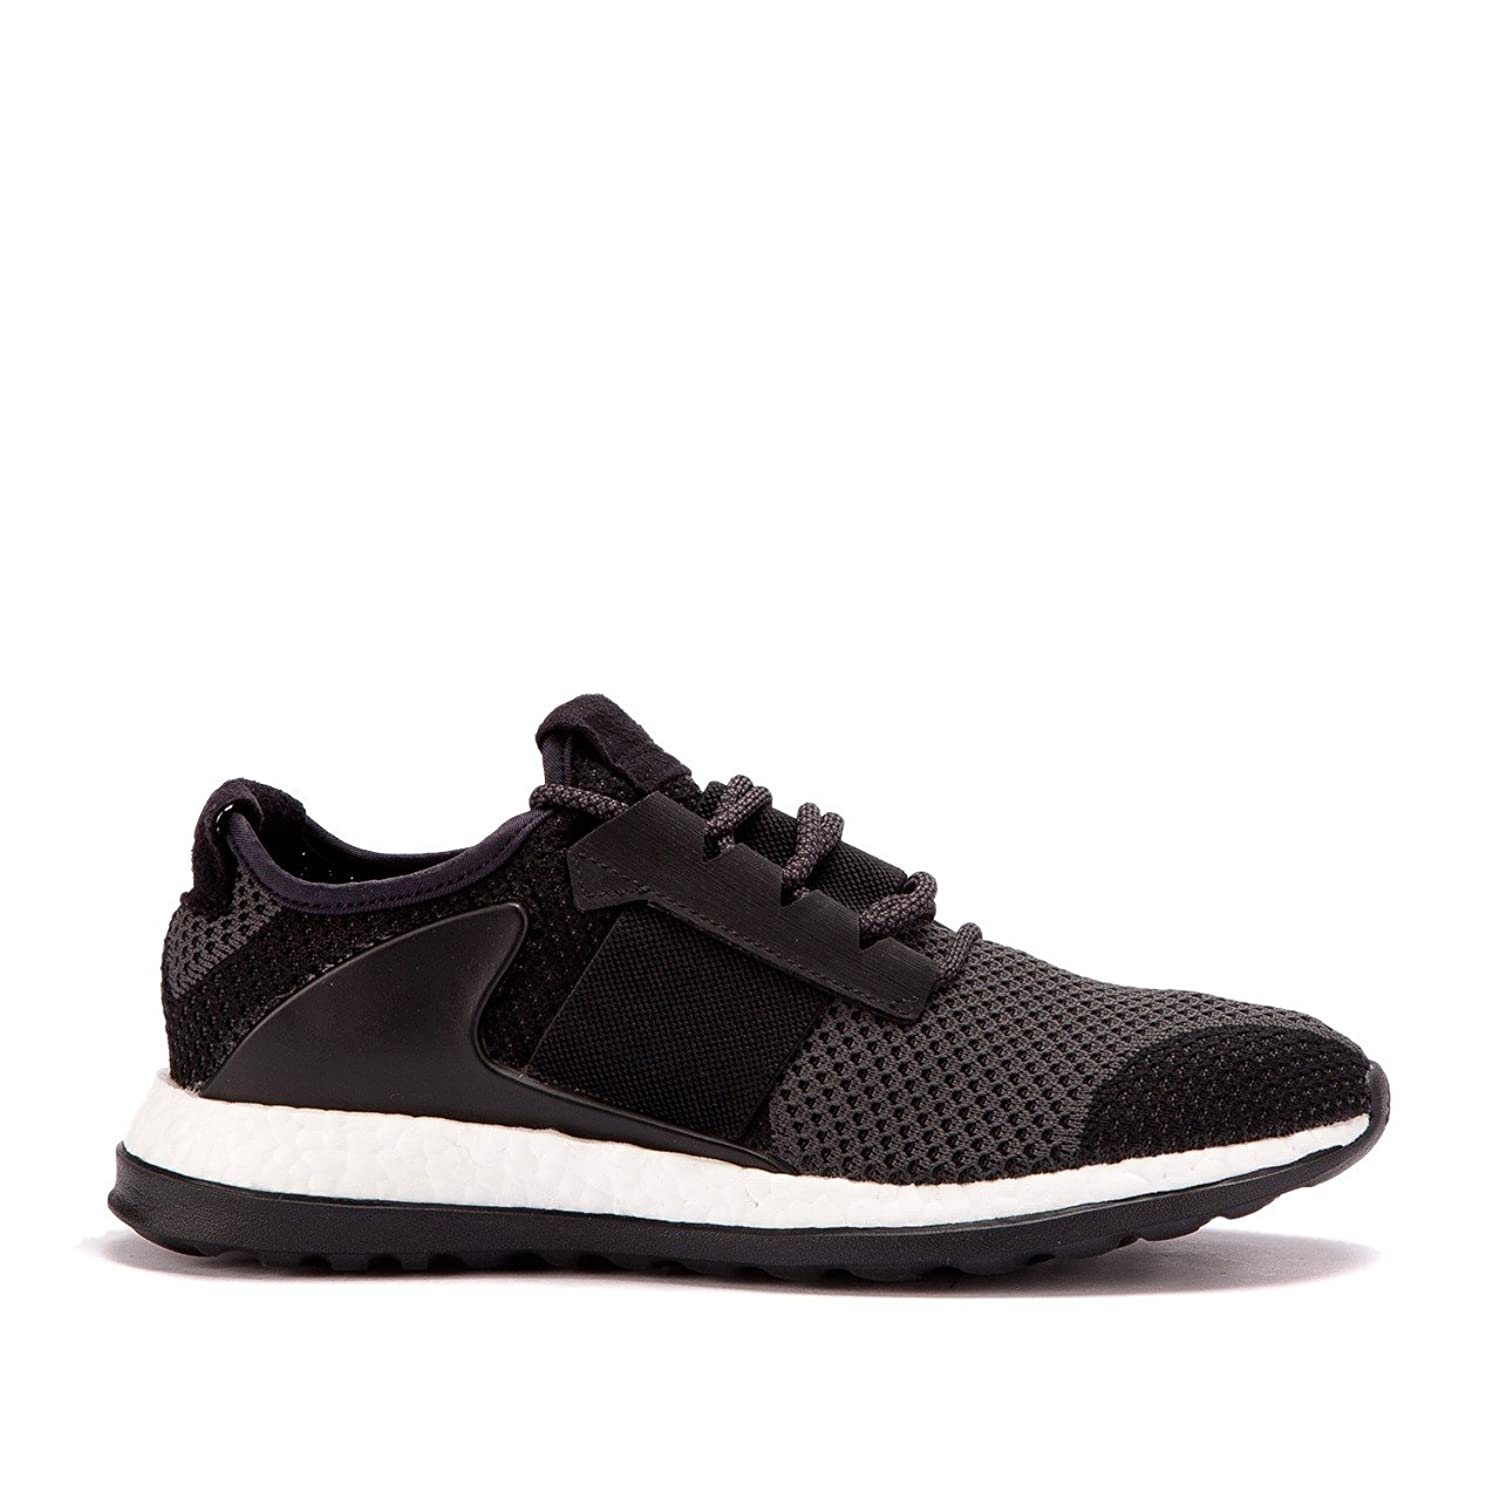 adidas Men's ADO Pure Boost ZG Black S81826